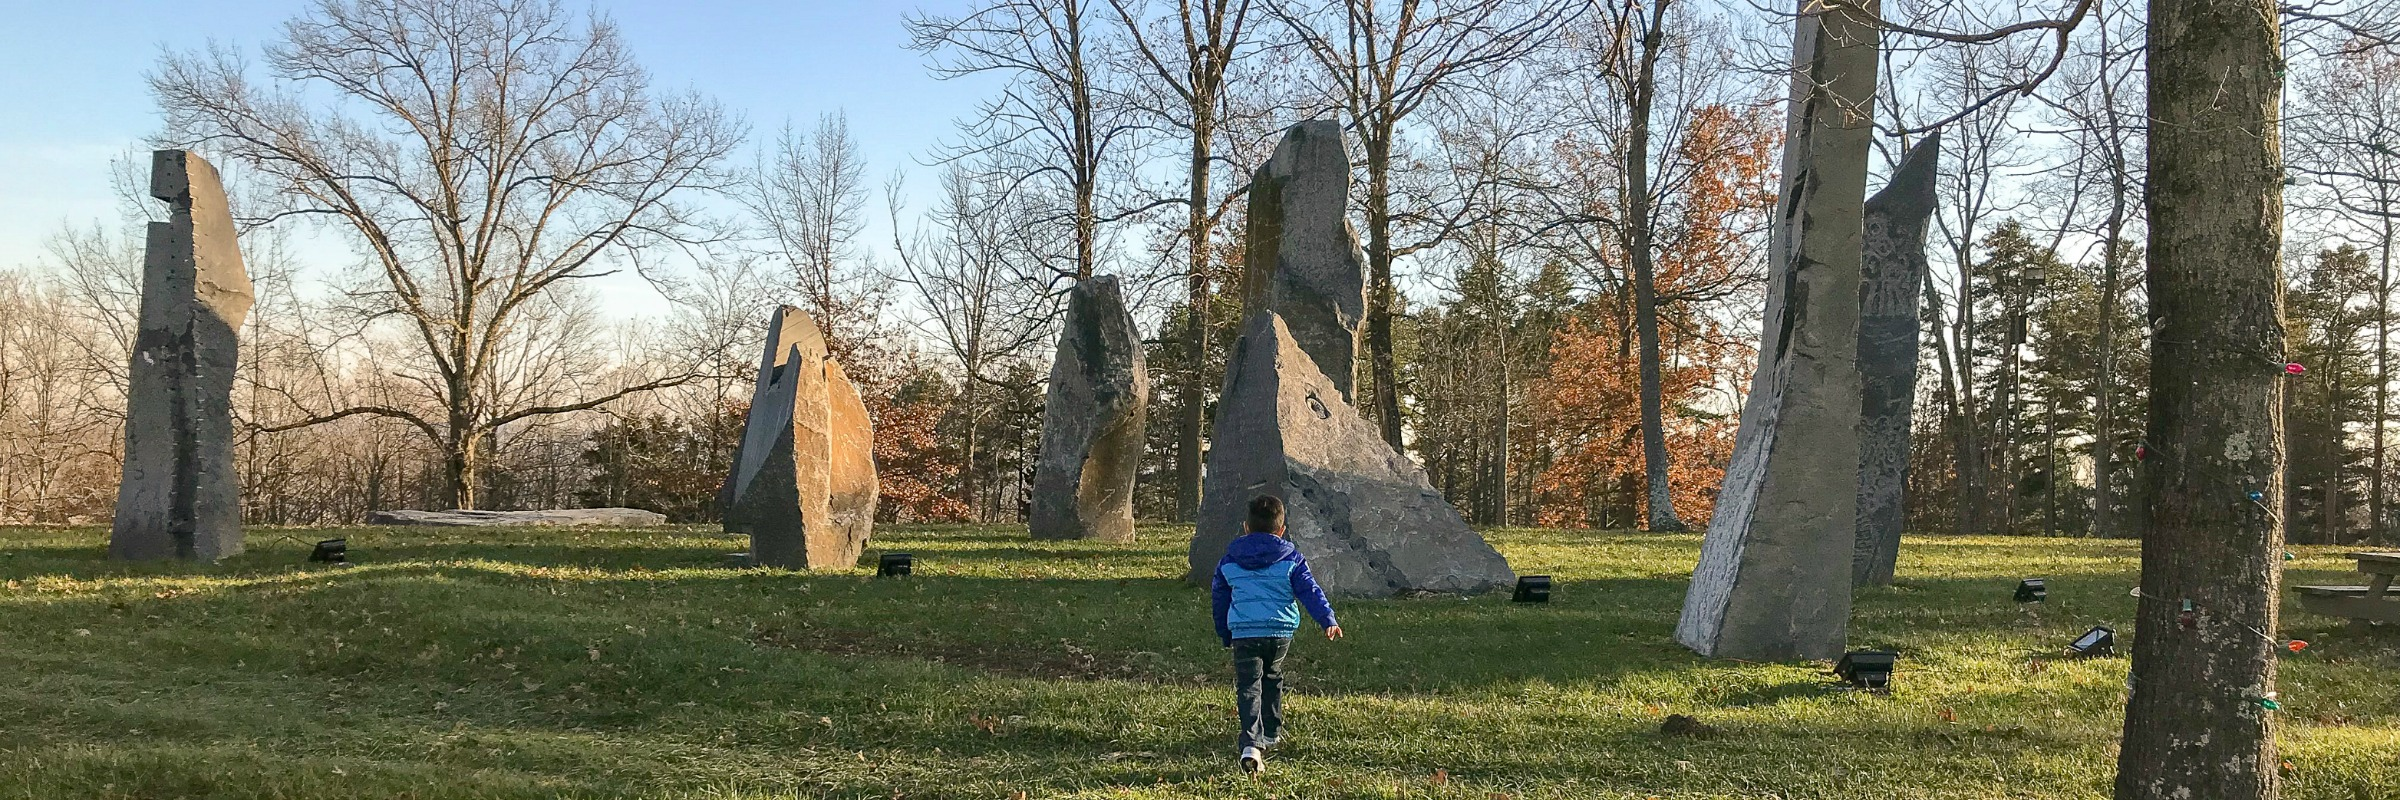 Logan at Pyramid Hill Sculpture Park